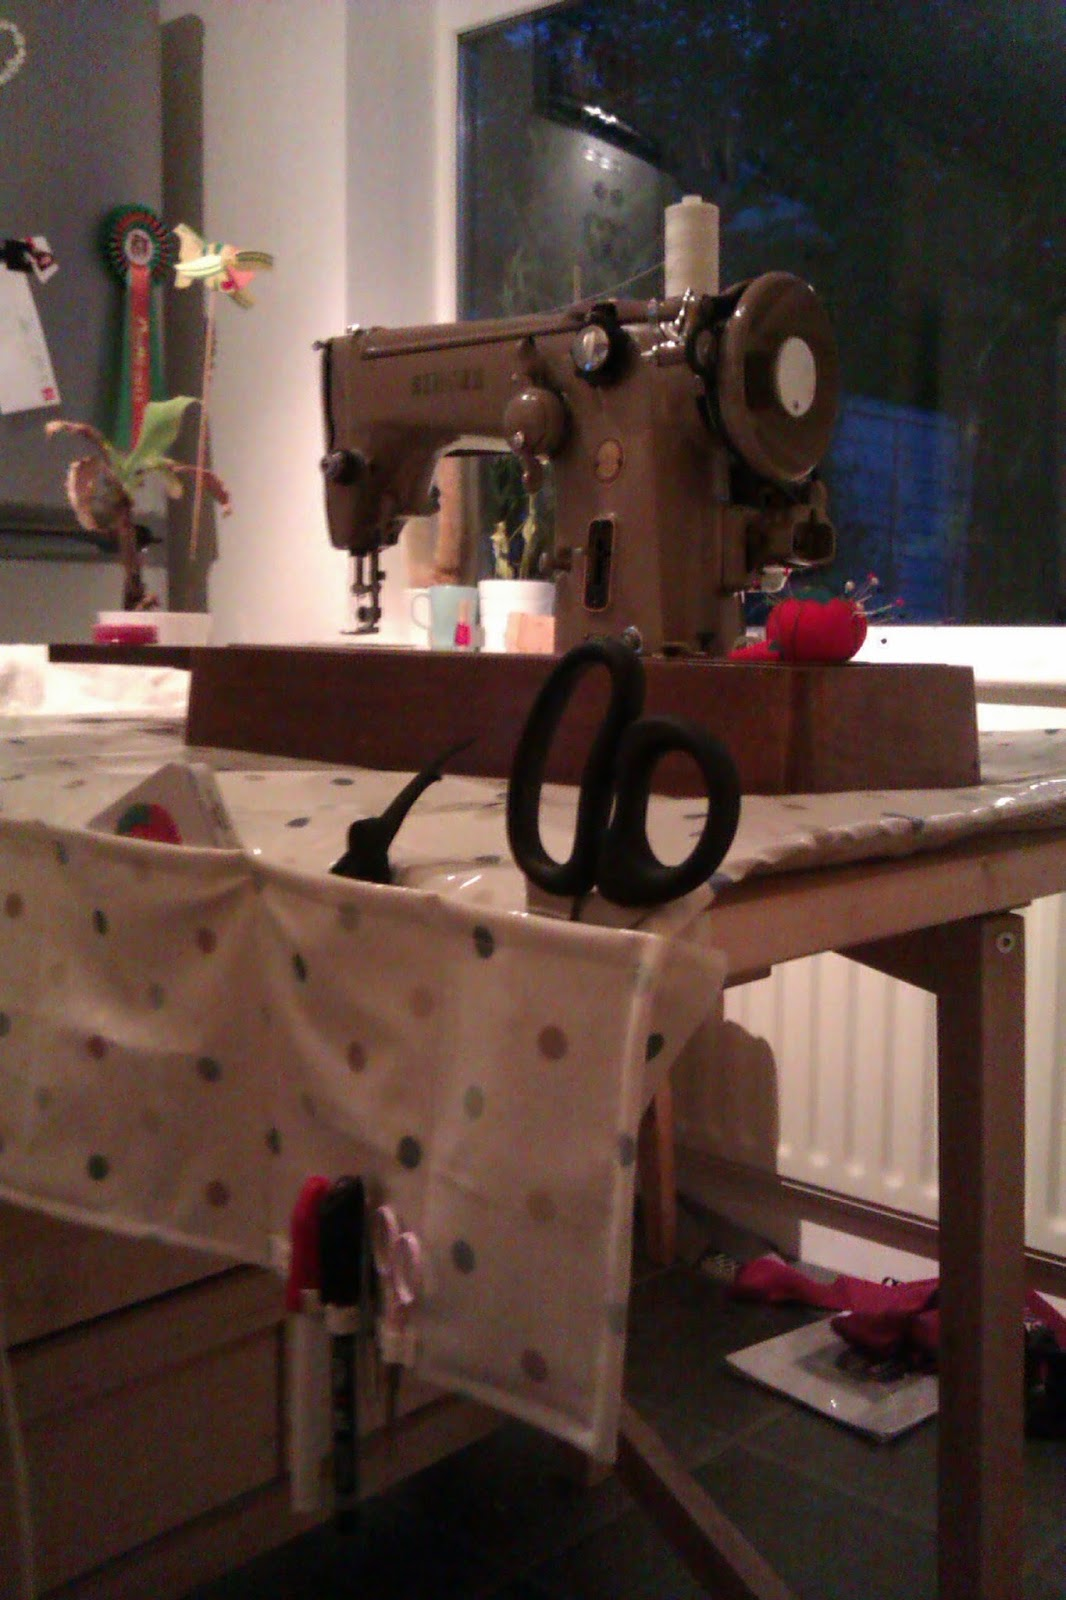 Crafty Knick Knacks First Singer 306k Project Sewing